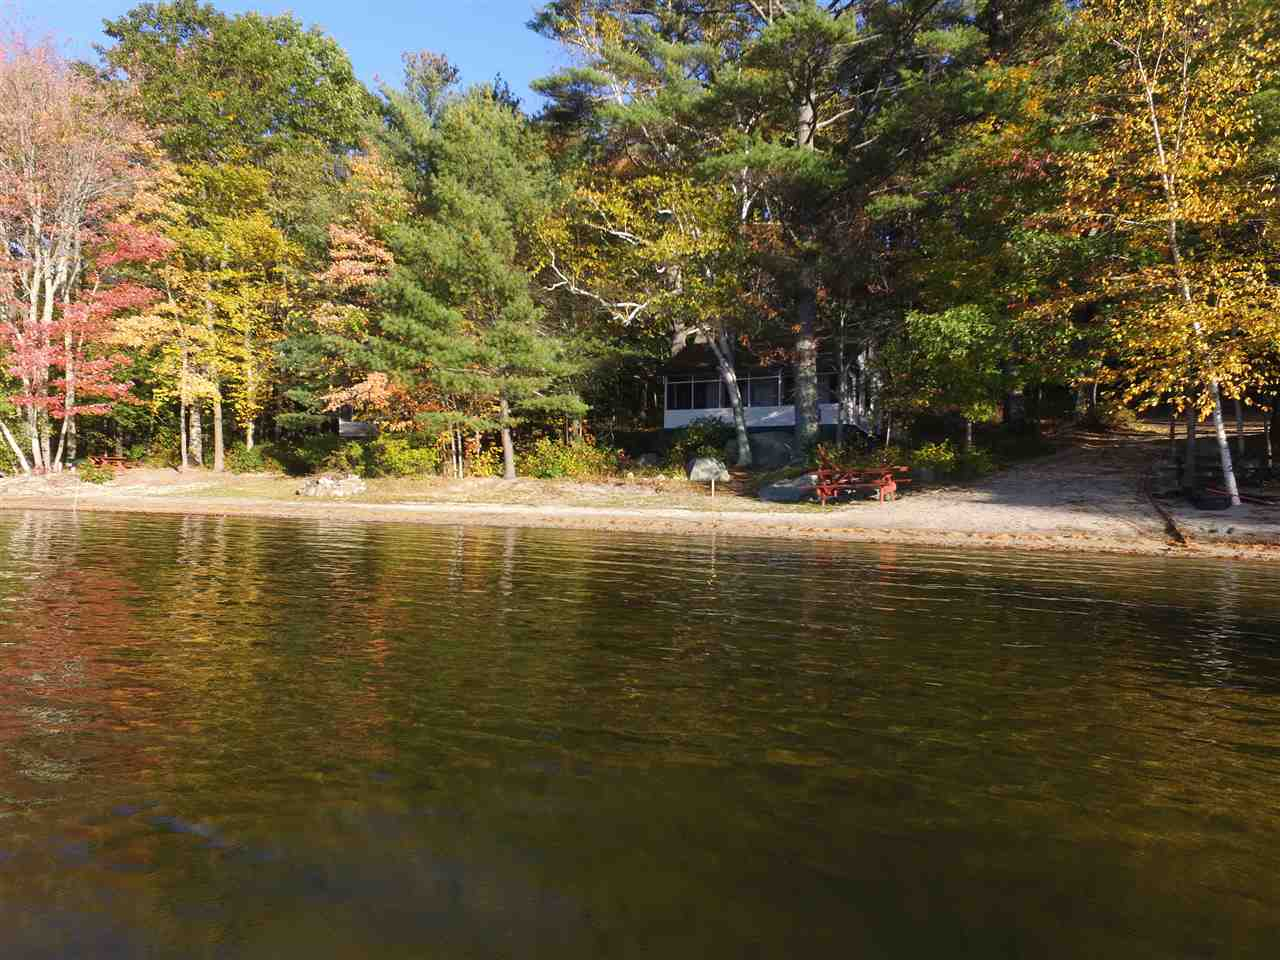 MLS 4659630: 253 Whittier Highway, Moultonborough NH